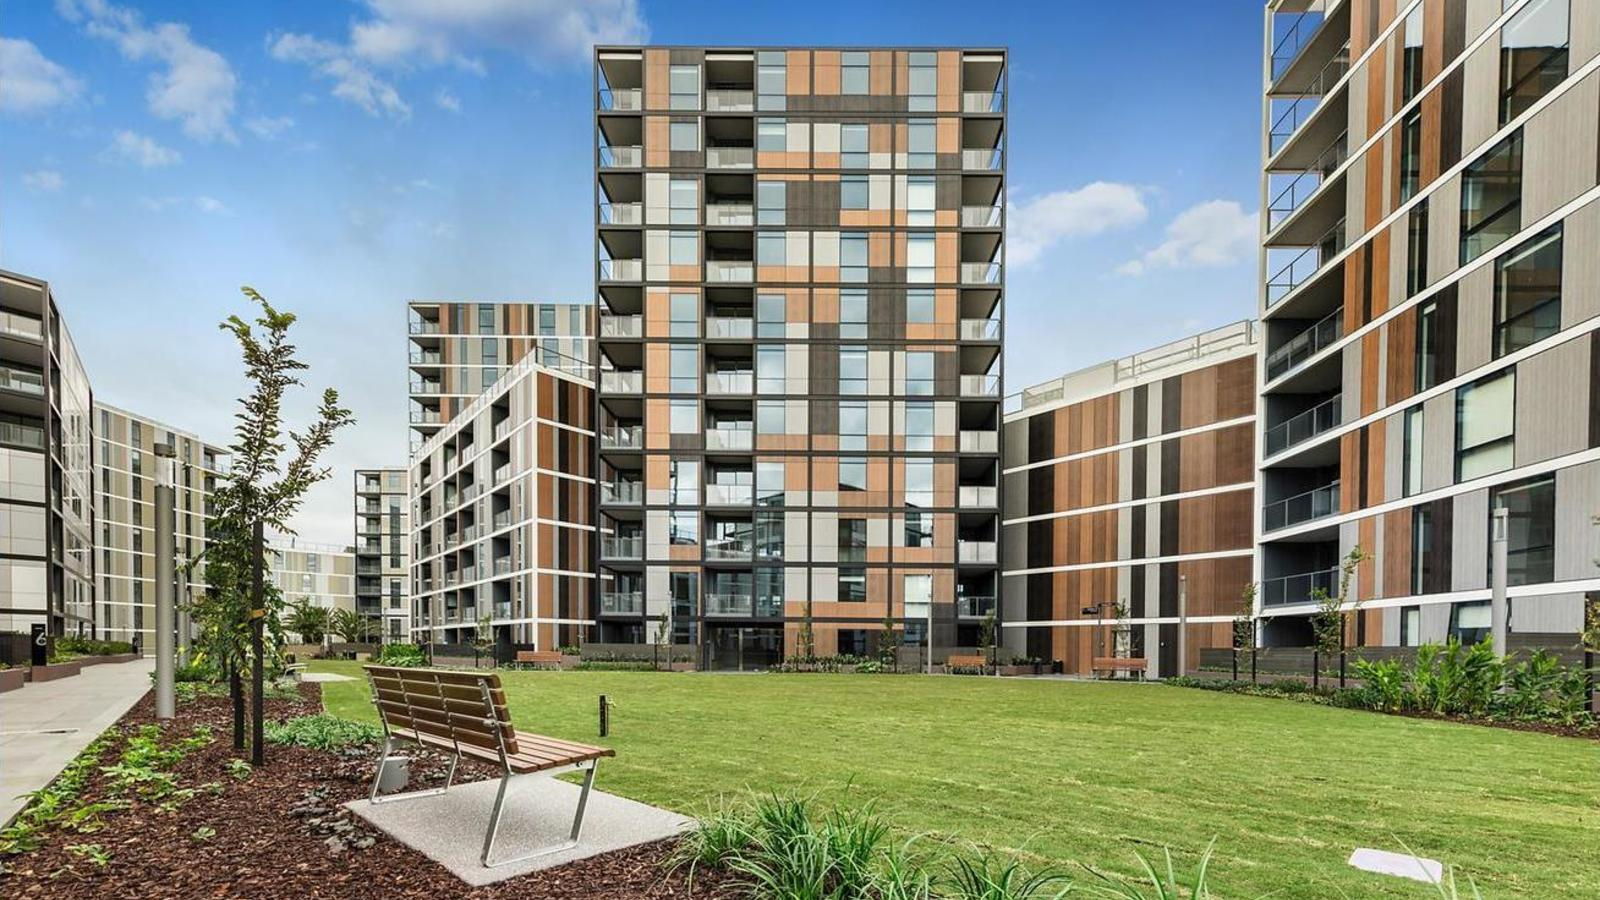 Cladding Systems - Non-Combustible Architectural Cladding Solutions